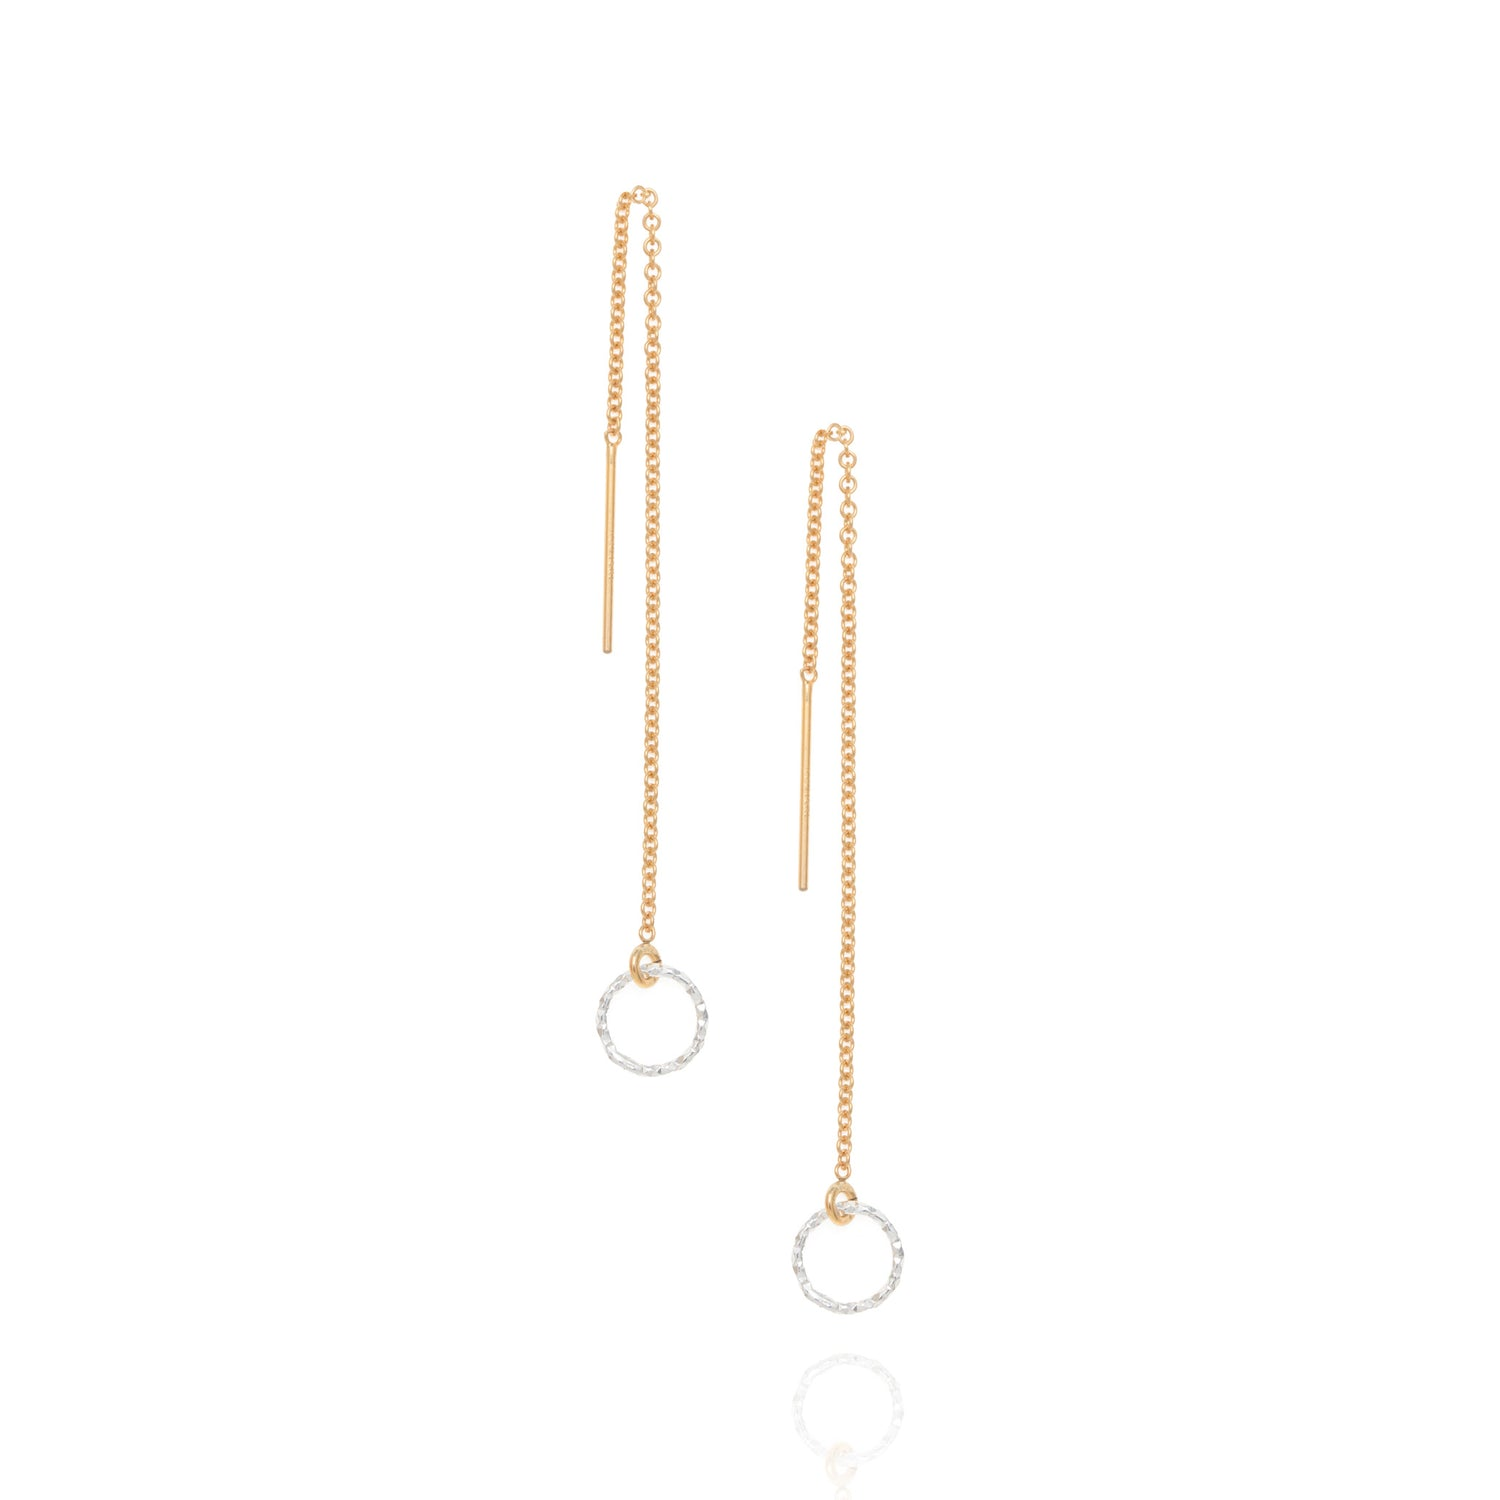 Halo drop earrings, gold & silver